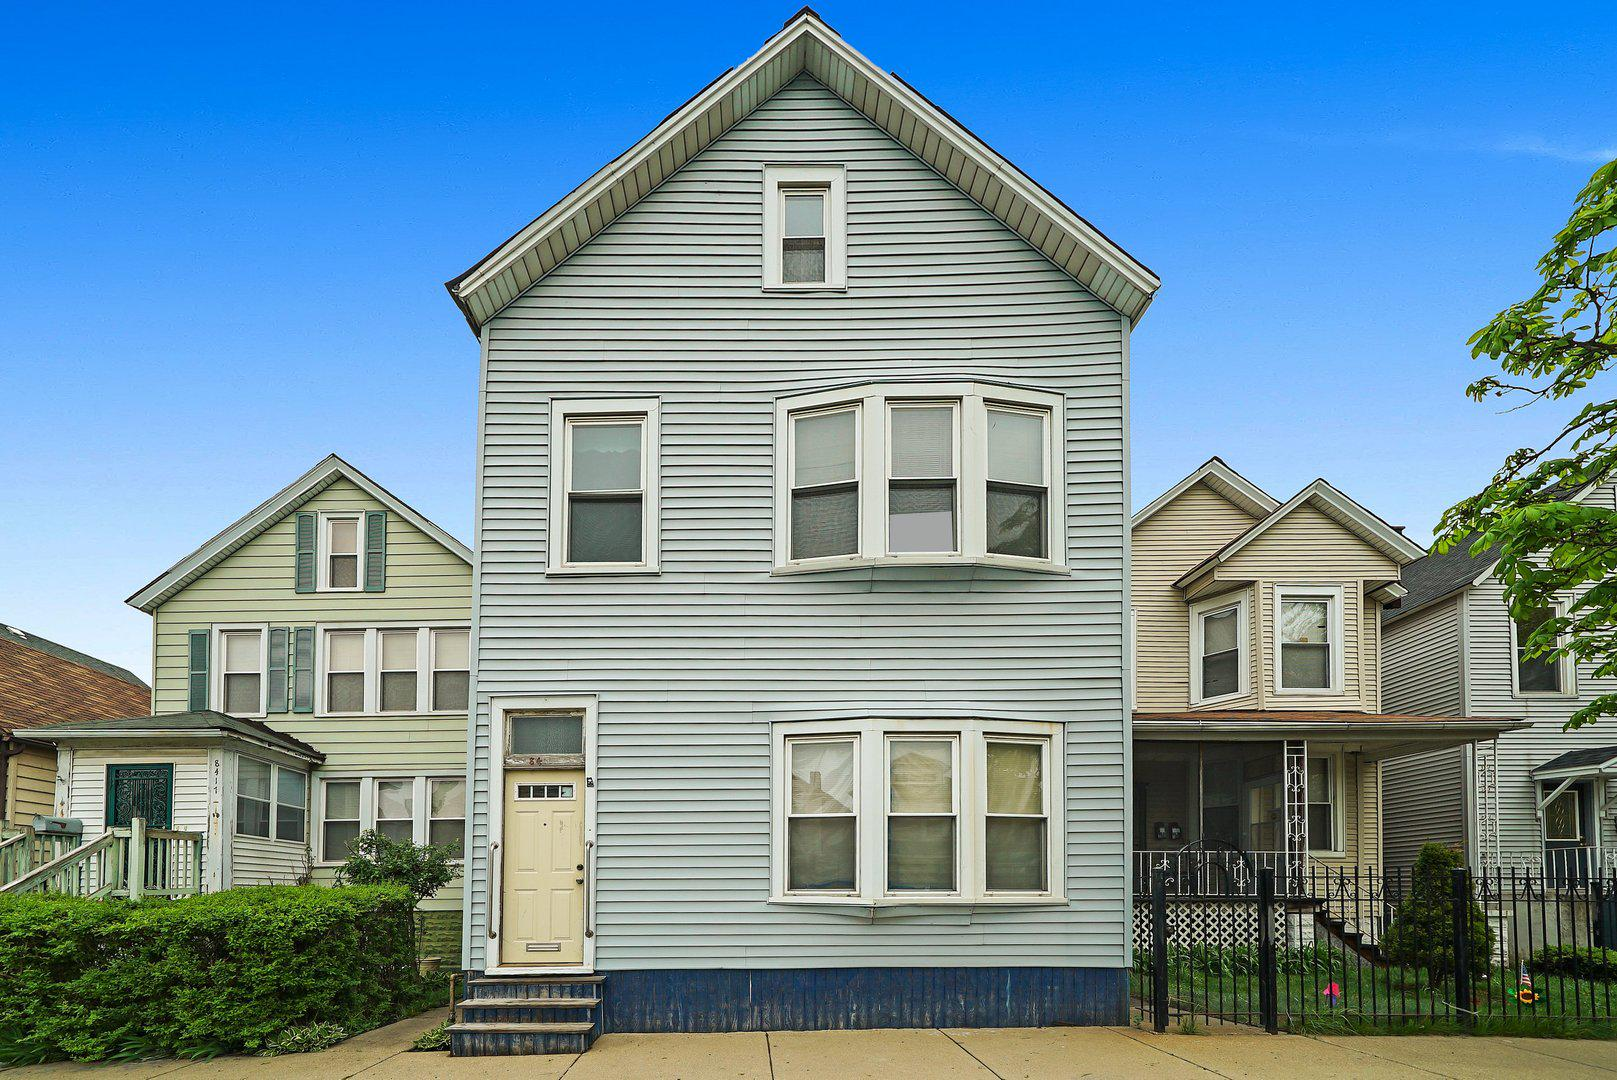 Multi-Family Home In South Chicago